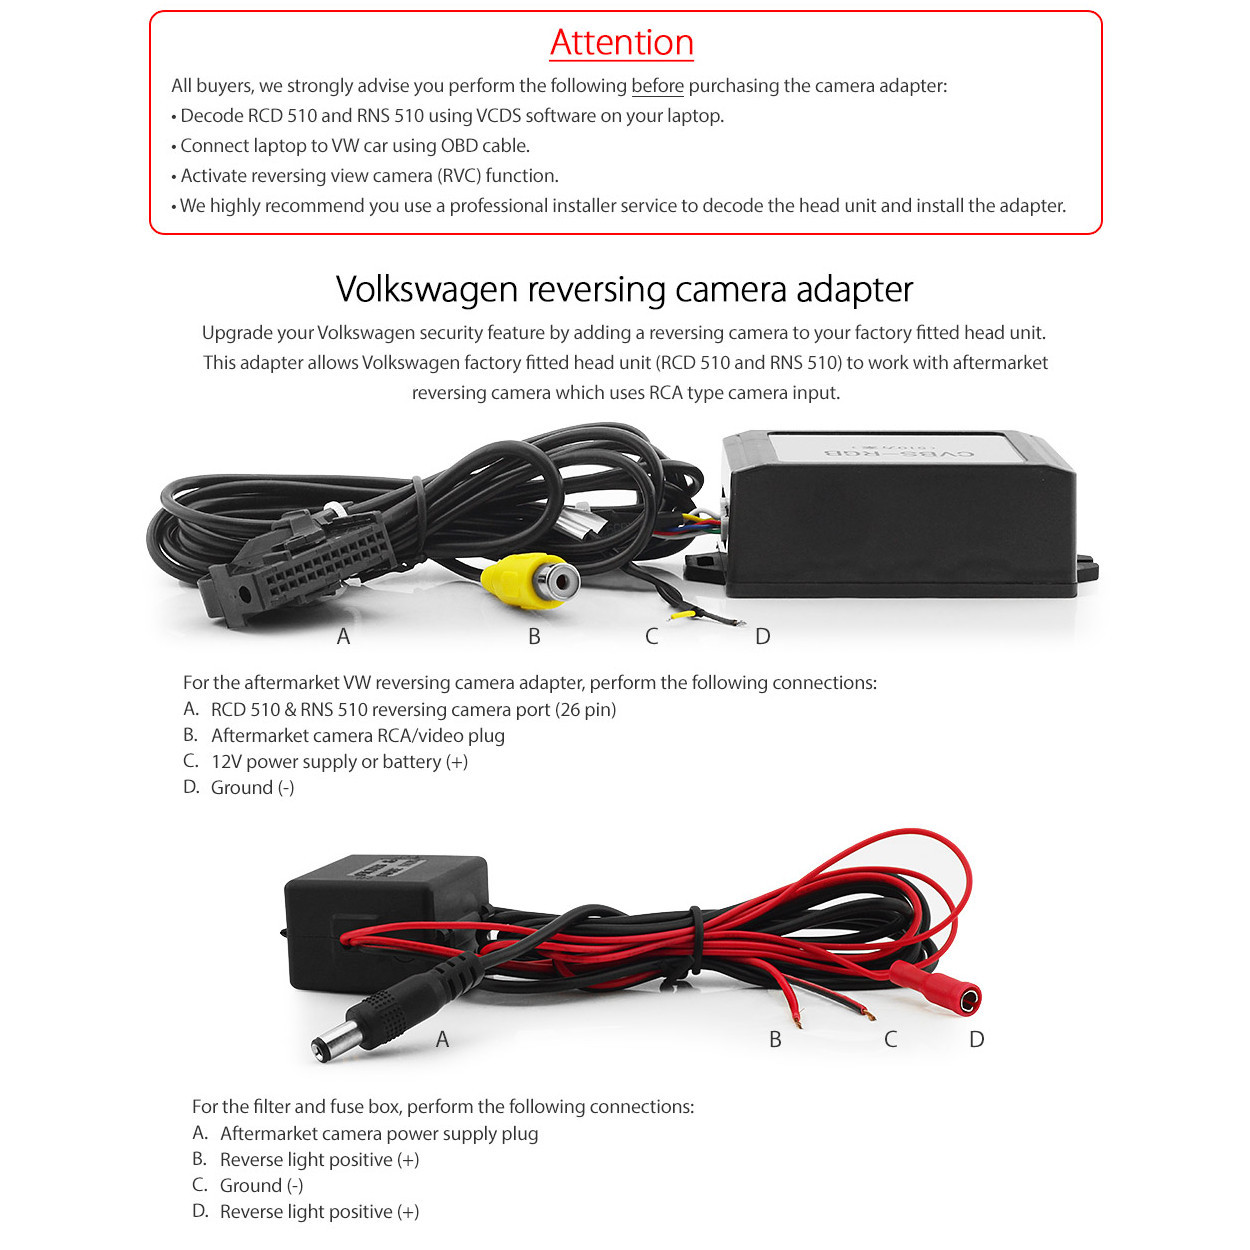 Direct Fit Aftermarket Rns510 Reversing Camera Adaptor For Vw Obd Wiring Larger More Photos